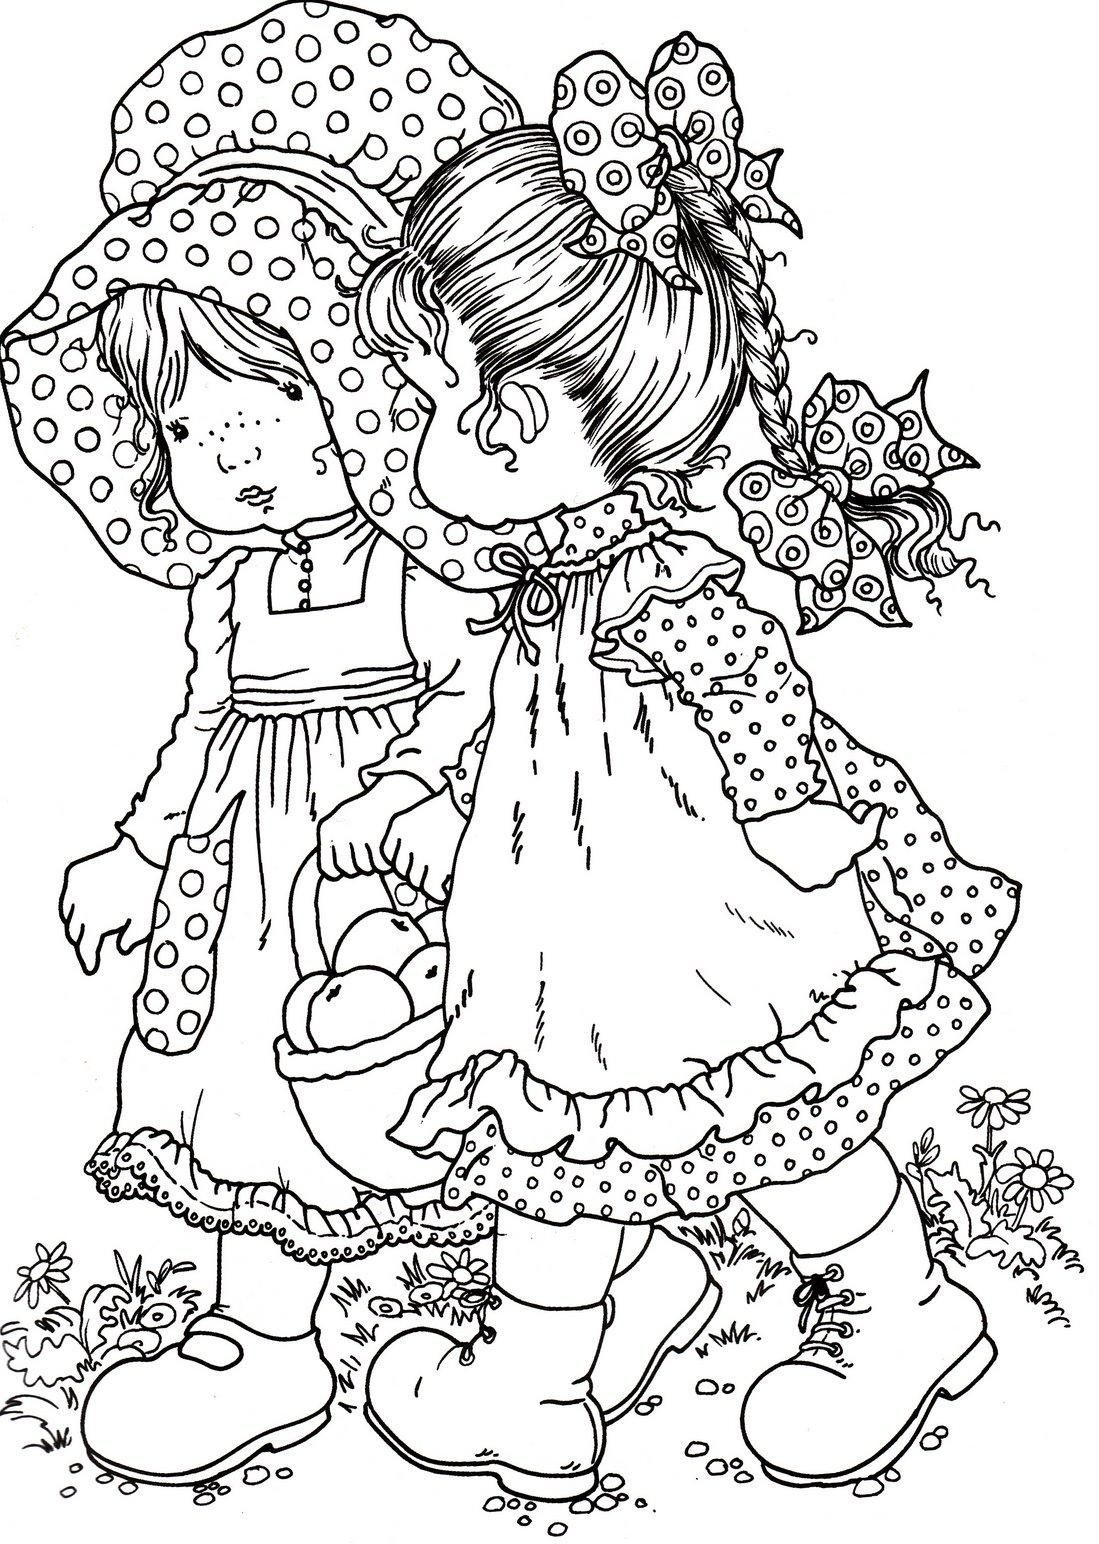 Sarah Kay Coloring Book Sarah Kay Coloring Books Coloring Pages